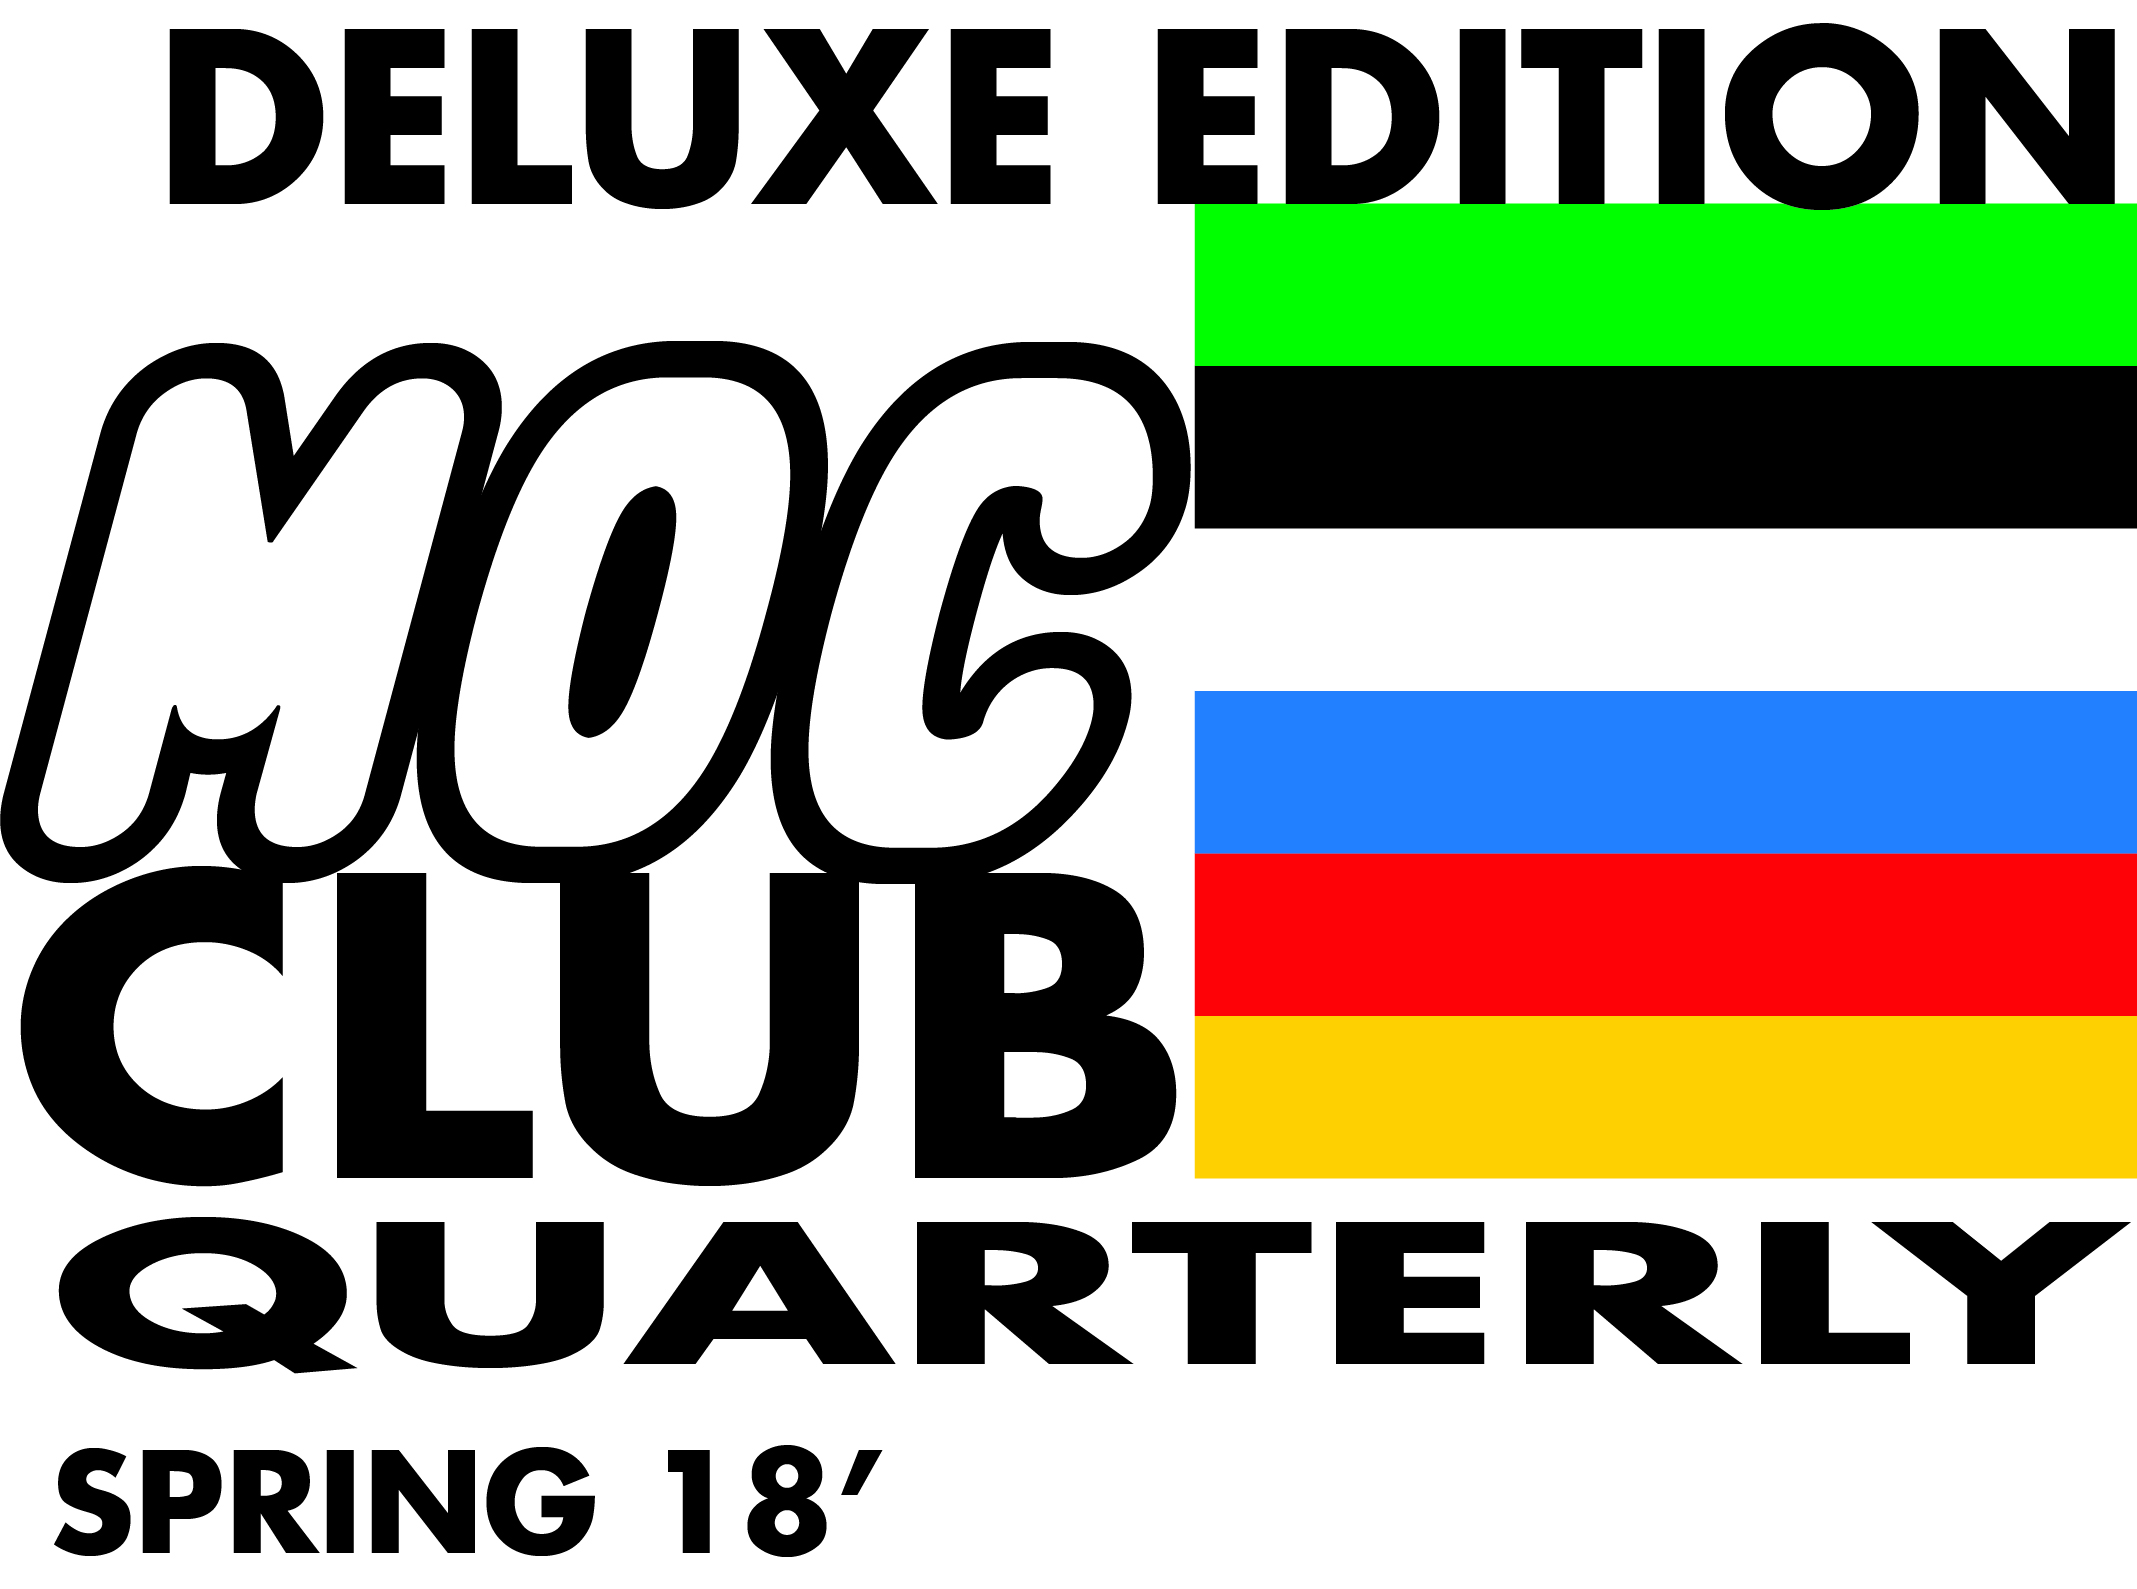 moc-club-quarterly-deluxe-01.jpg